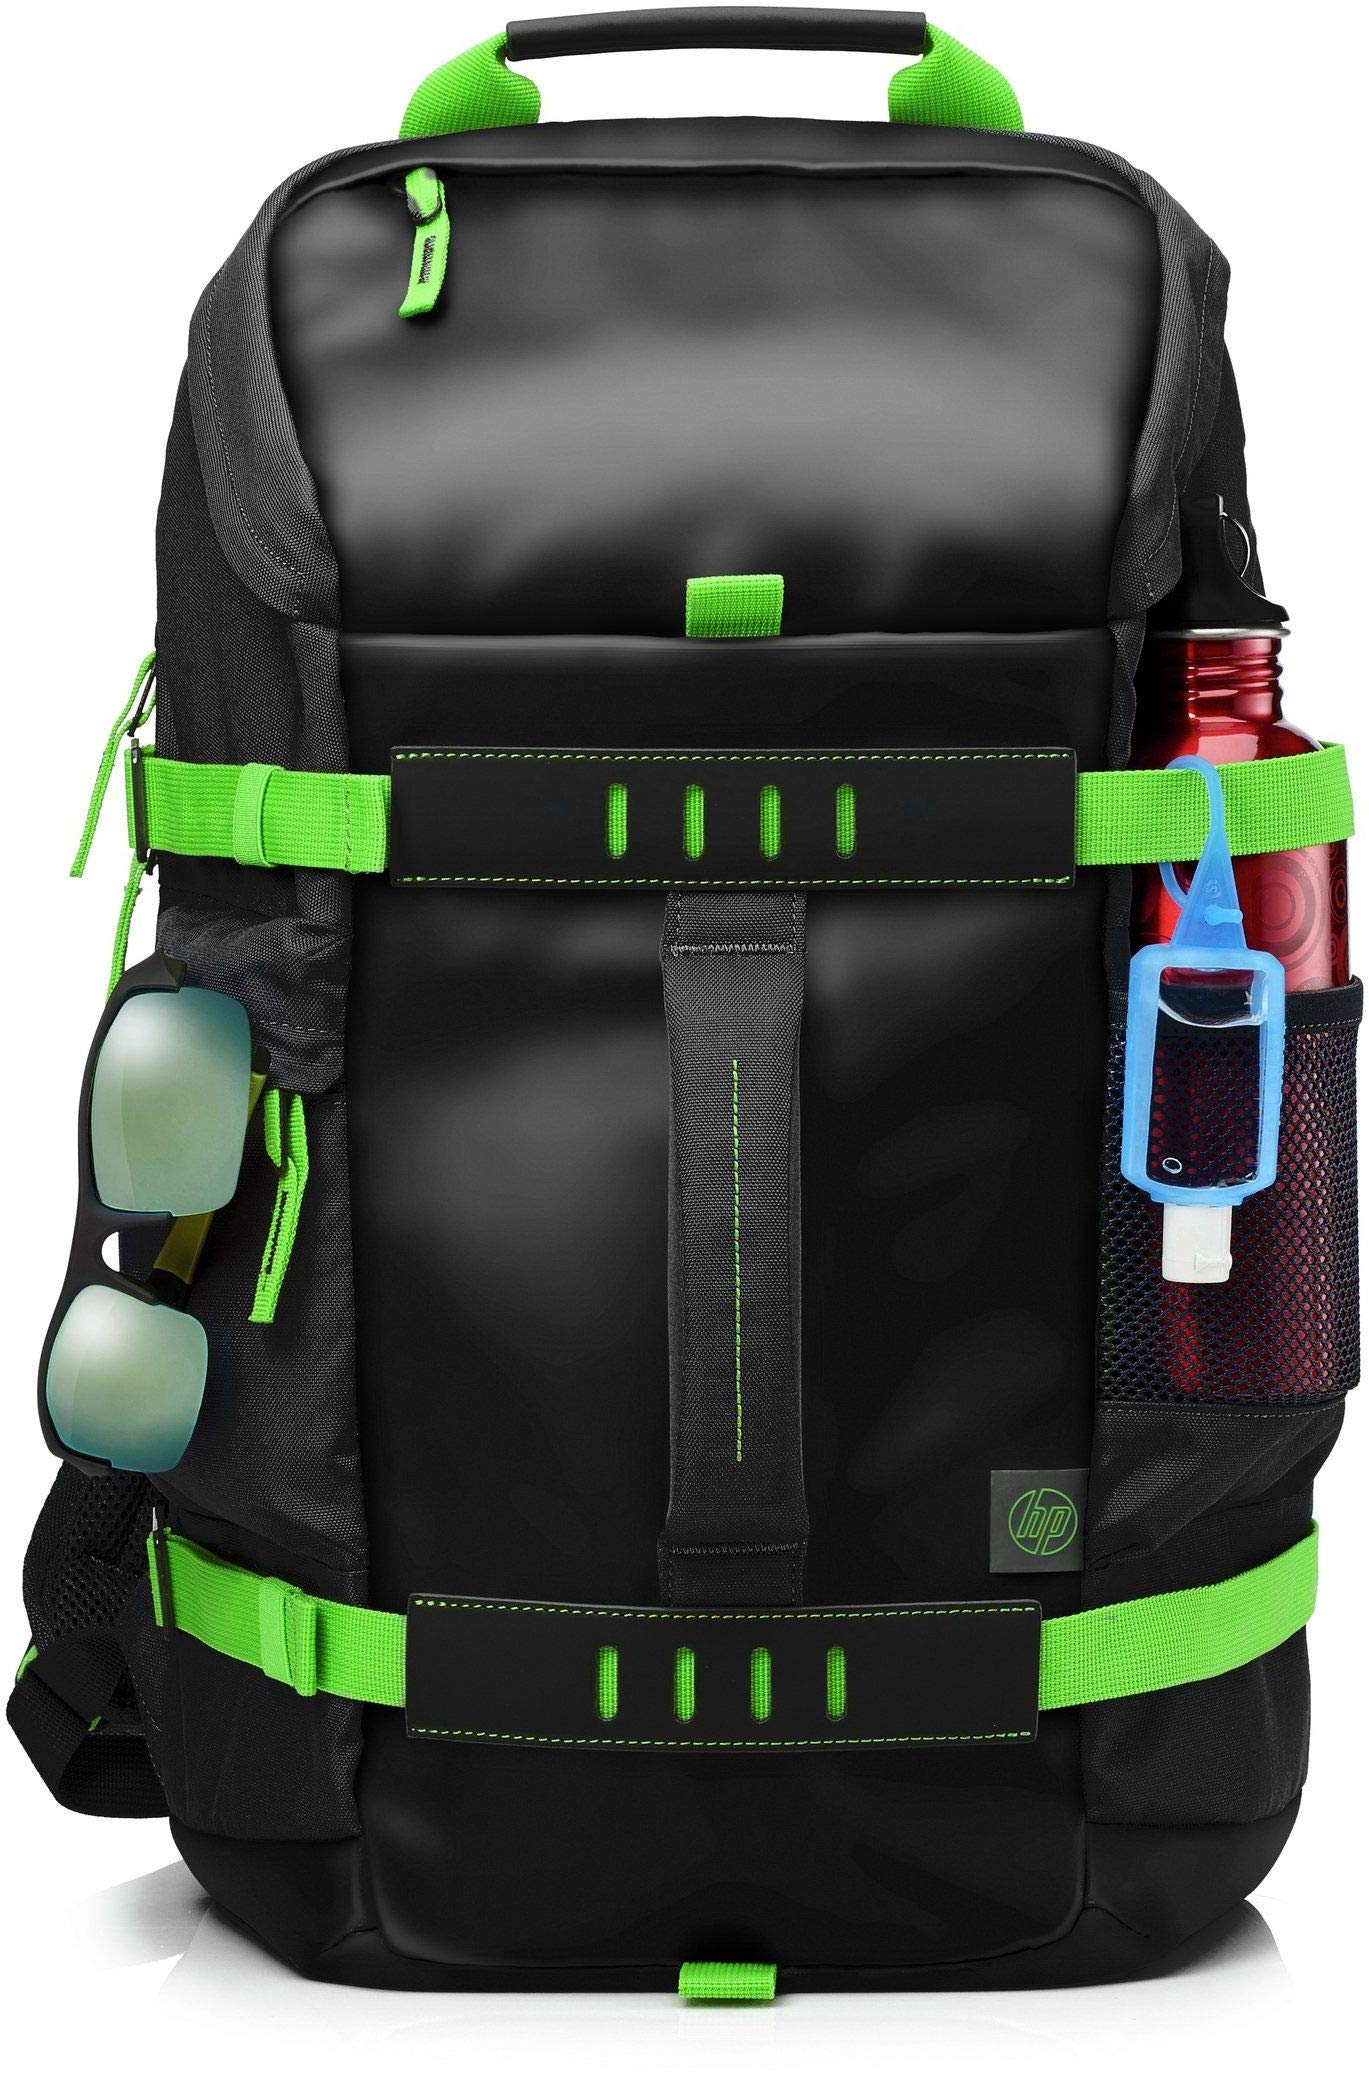 HP Odyssey T5P98AA Backpack for 15.6-inch Laptops (Black/Electric Green) product image